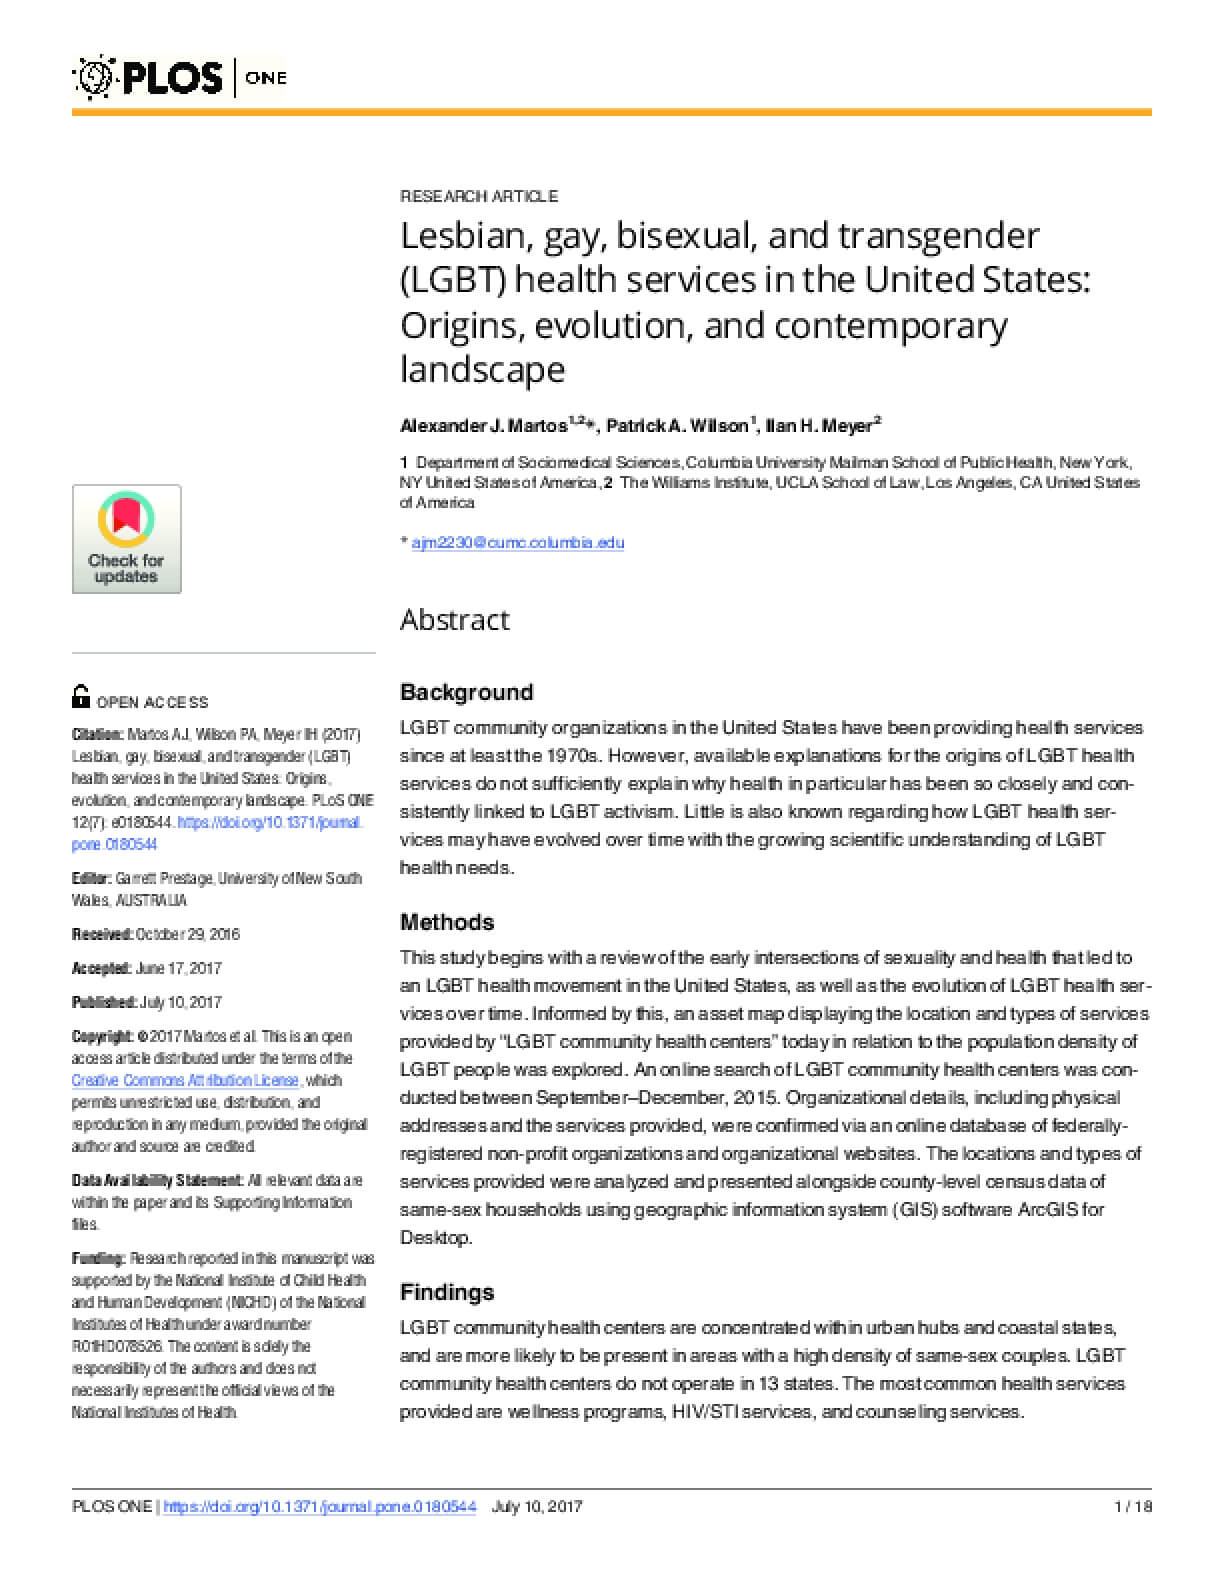 Lesbian, Gay, Bisexual, and Transgender (LGBT) Health Services in the United States: Origins, Evolution, and Contemporary Landscape